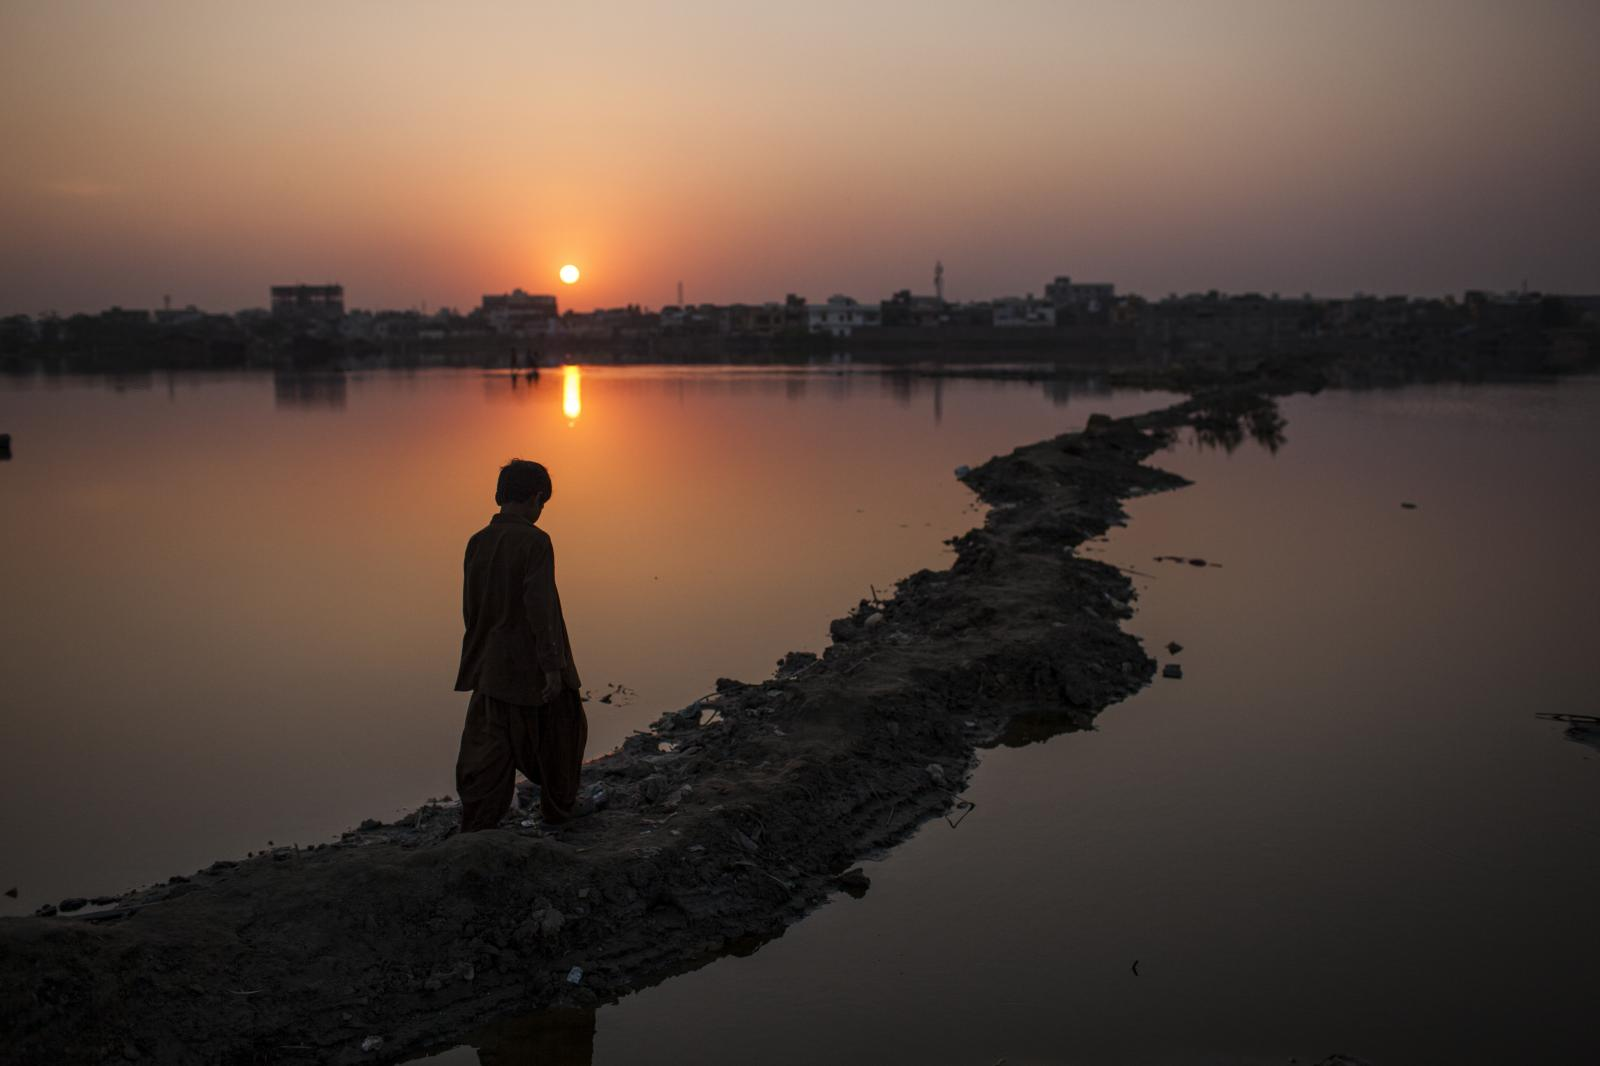 Sunset in Hyderabad's city. Most of the south of the province remains under water. Rains have led to destruction. Diego Ibarra Sánchez for WHO